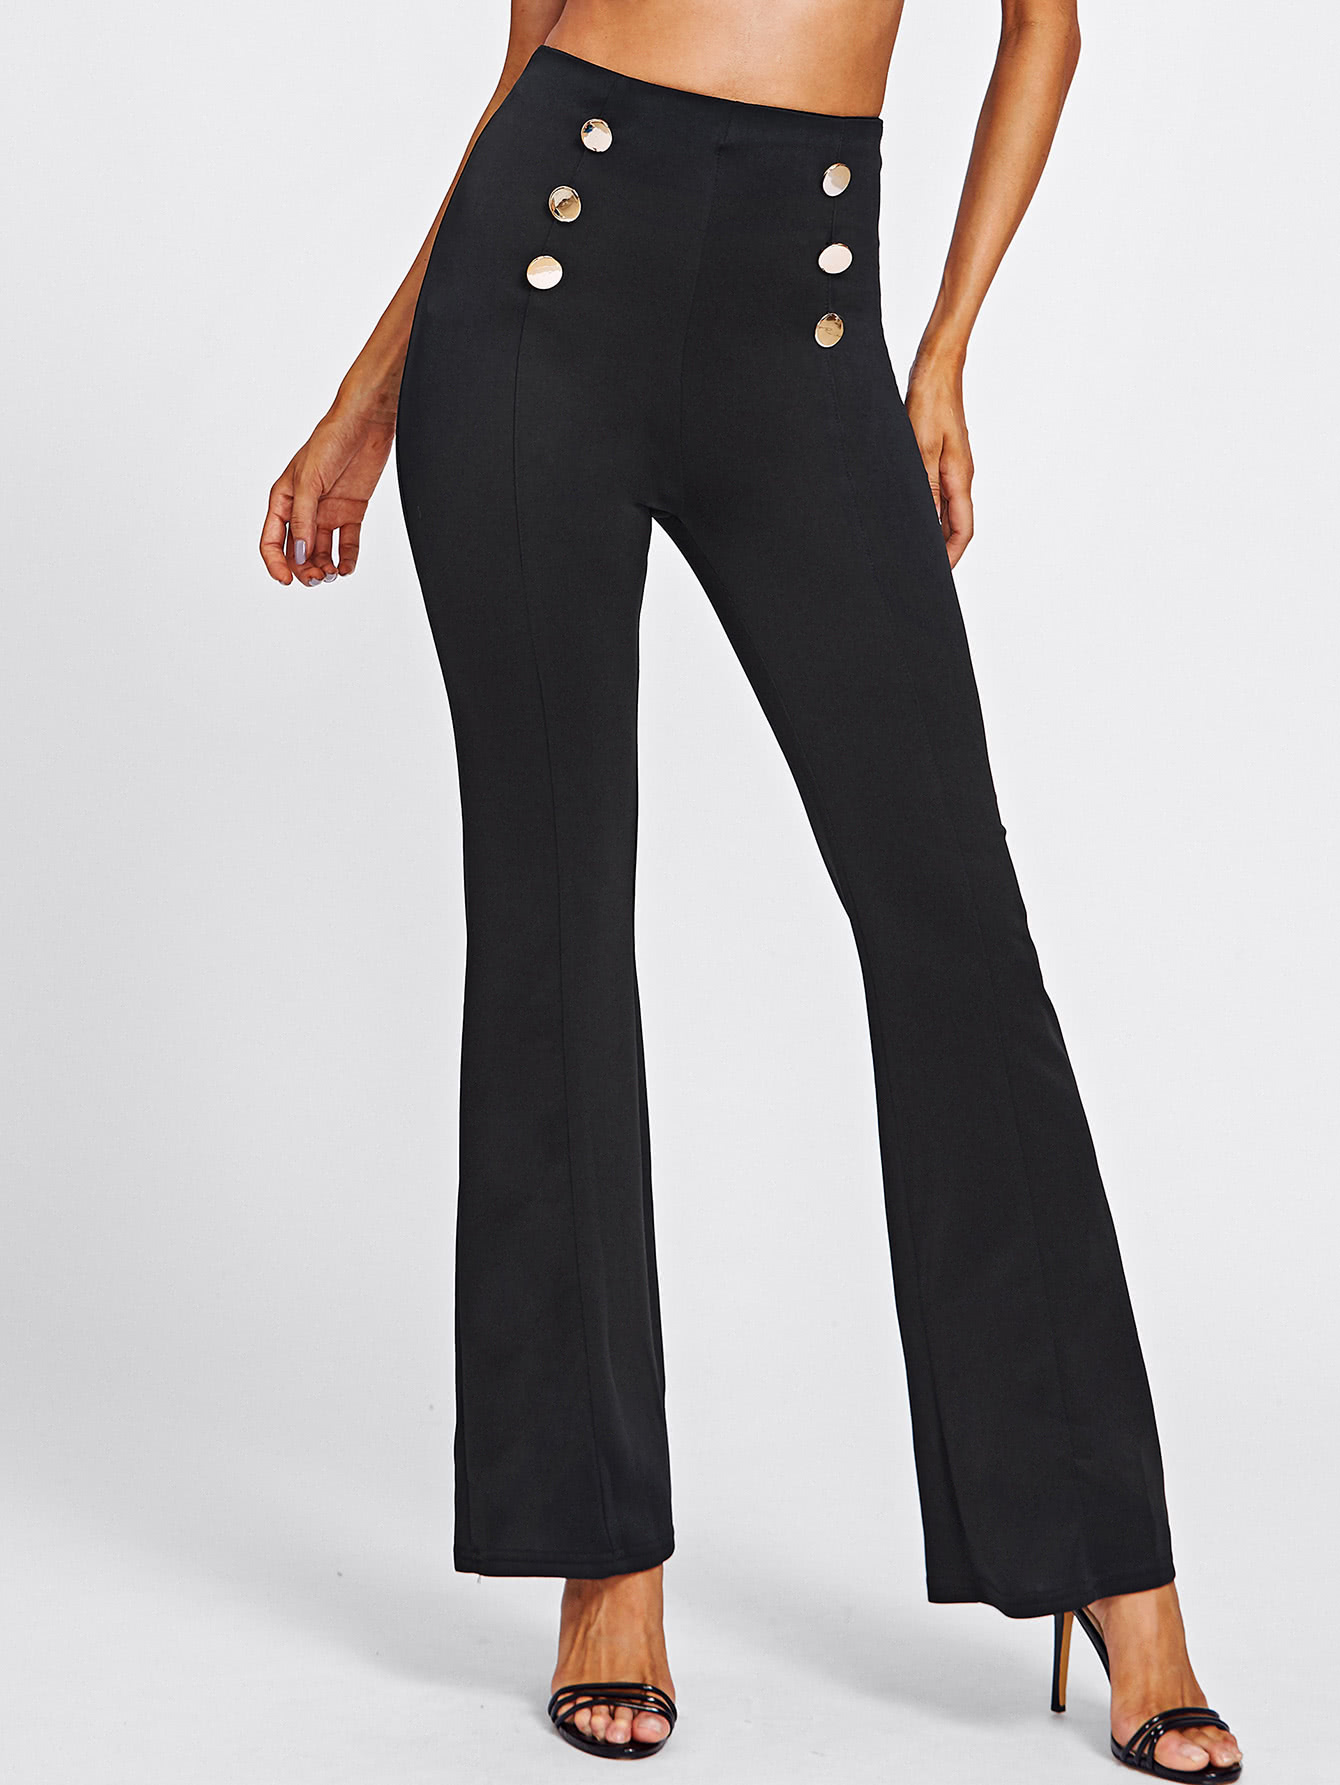 Image of Double Breasted High Waist Pants